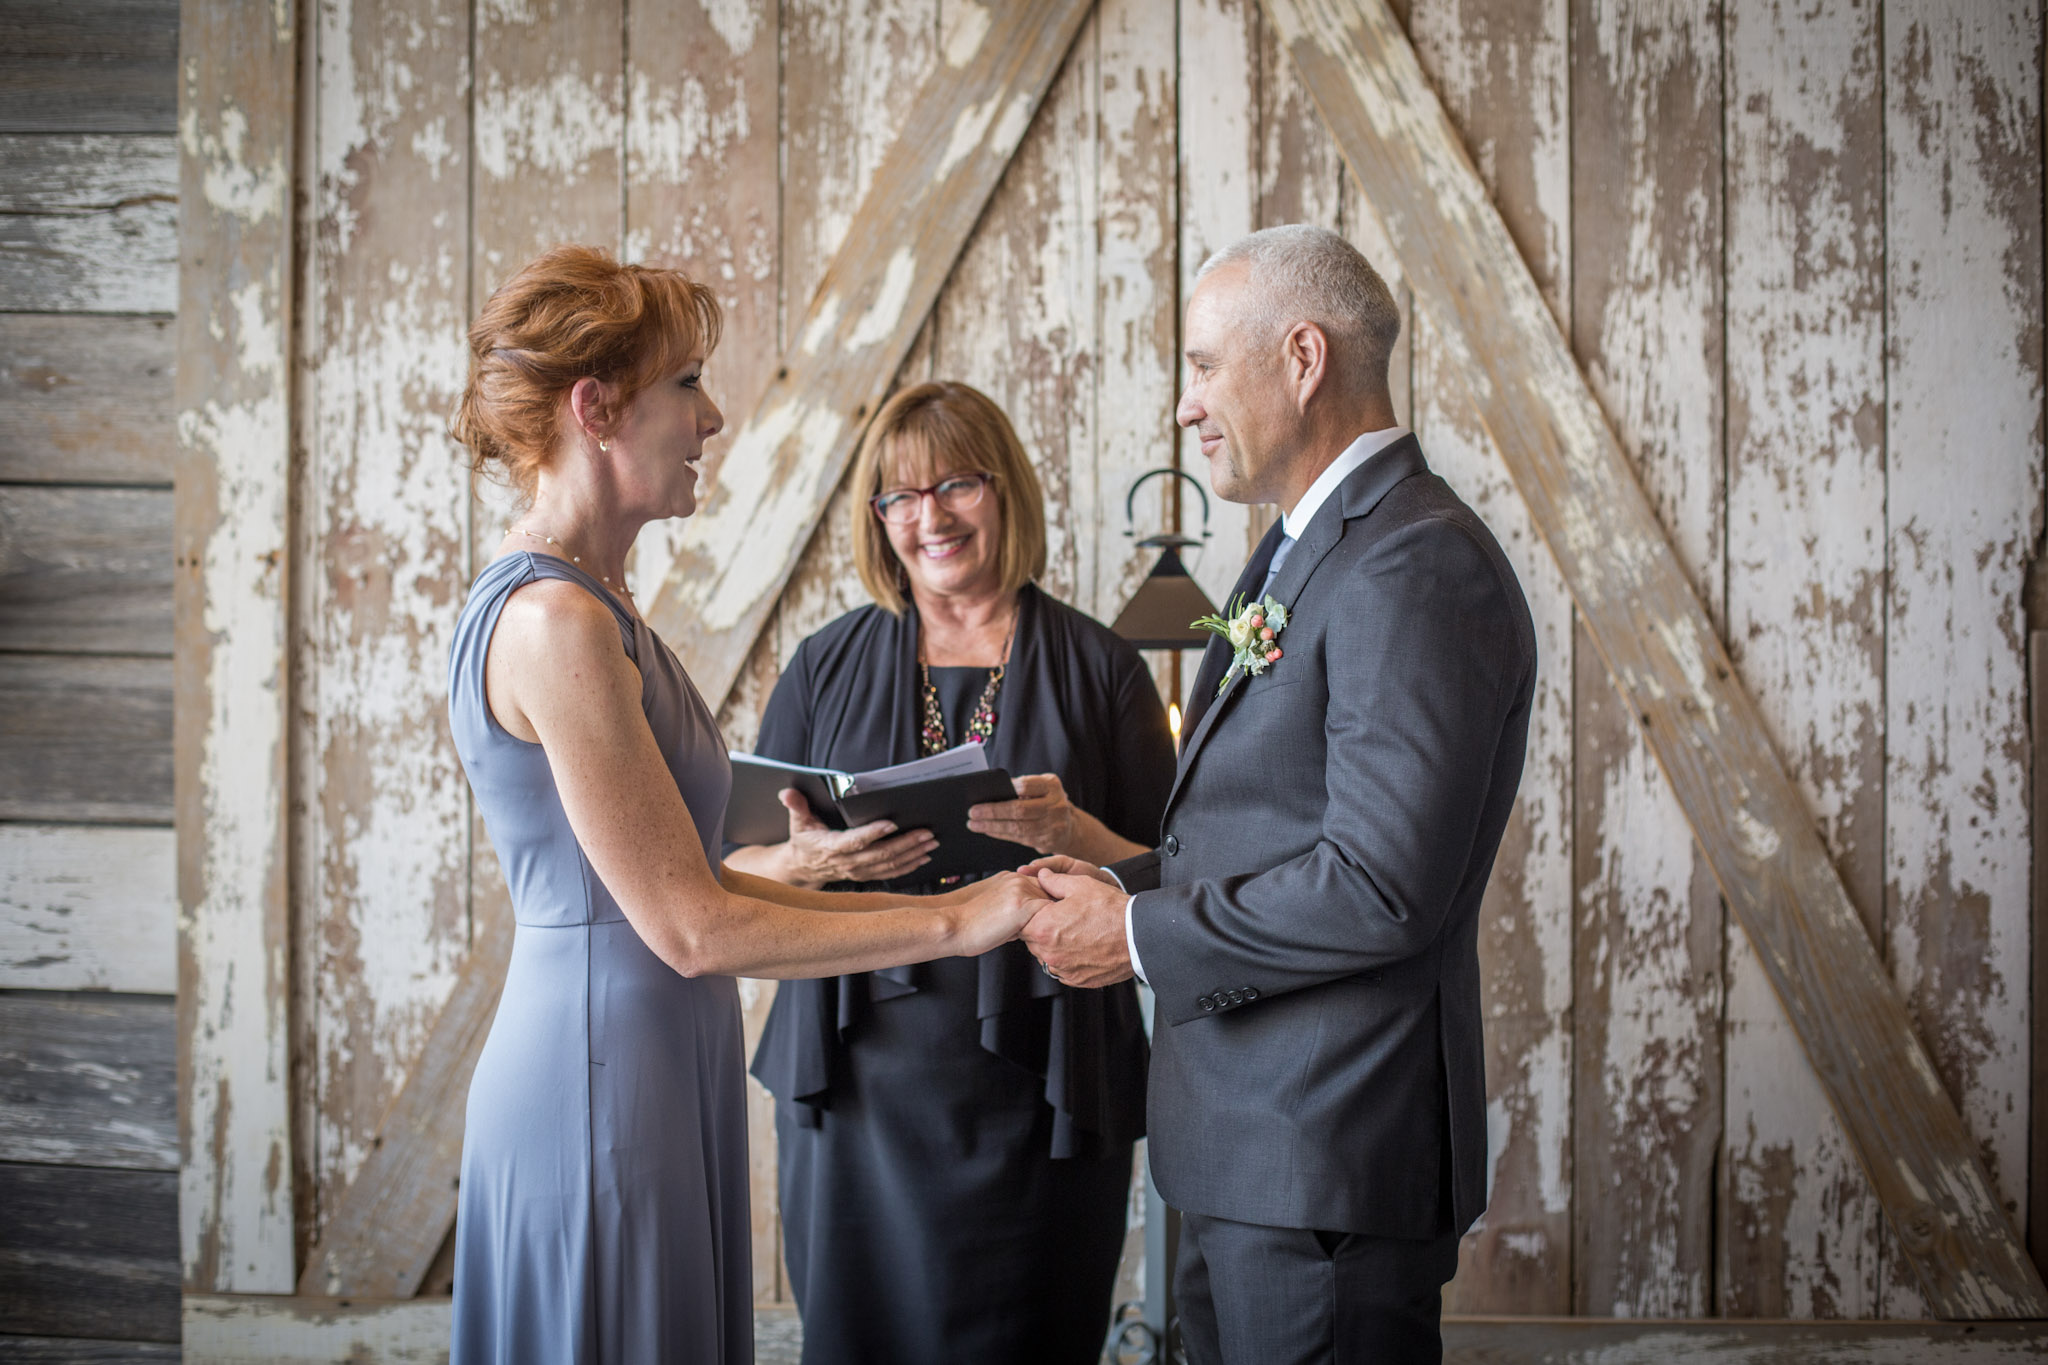 Kansas_City_Small_Wedding_Venue_Elope_Intimate_Ceremony_Budget_Affordable_Kim&Gene_072.jpg